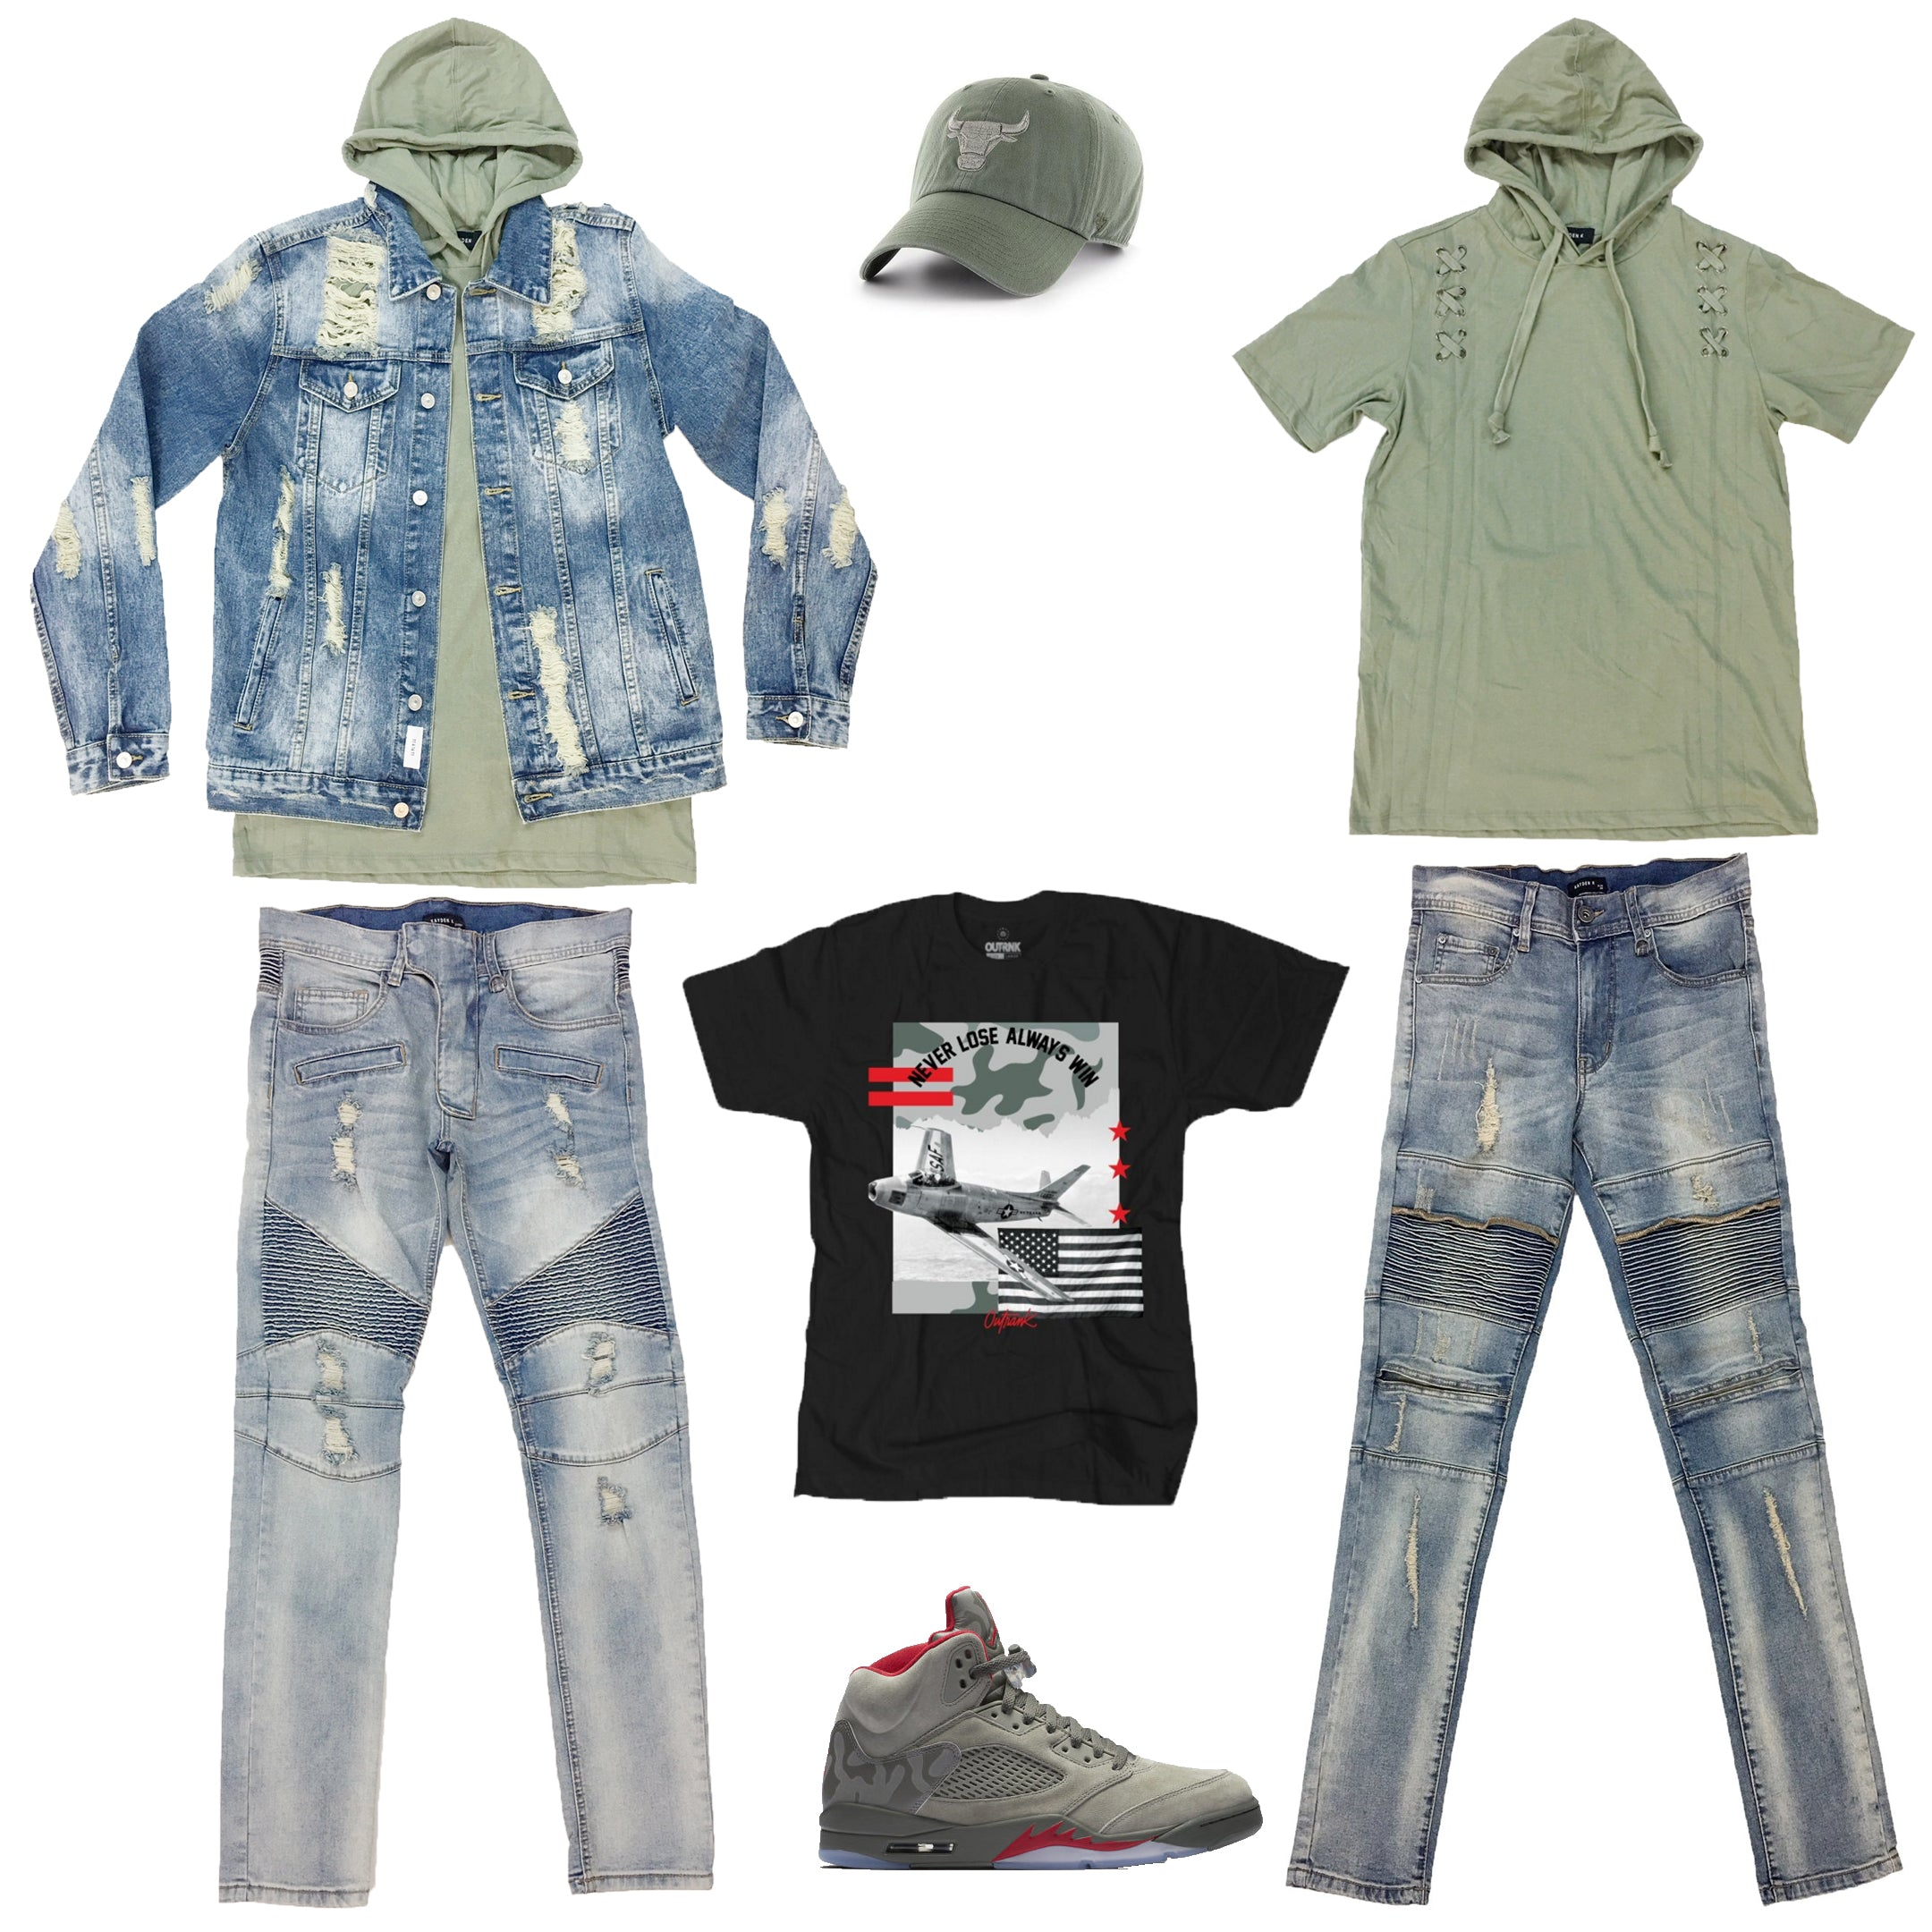 91b4d919a2a Air Jordan 5 Retro Camo Outfit19.99 USDHat,Jacket,Hoodie,Bottom